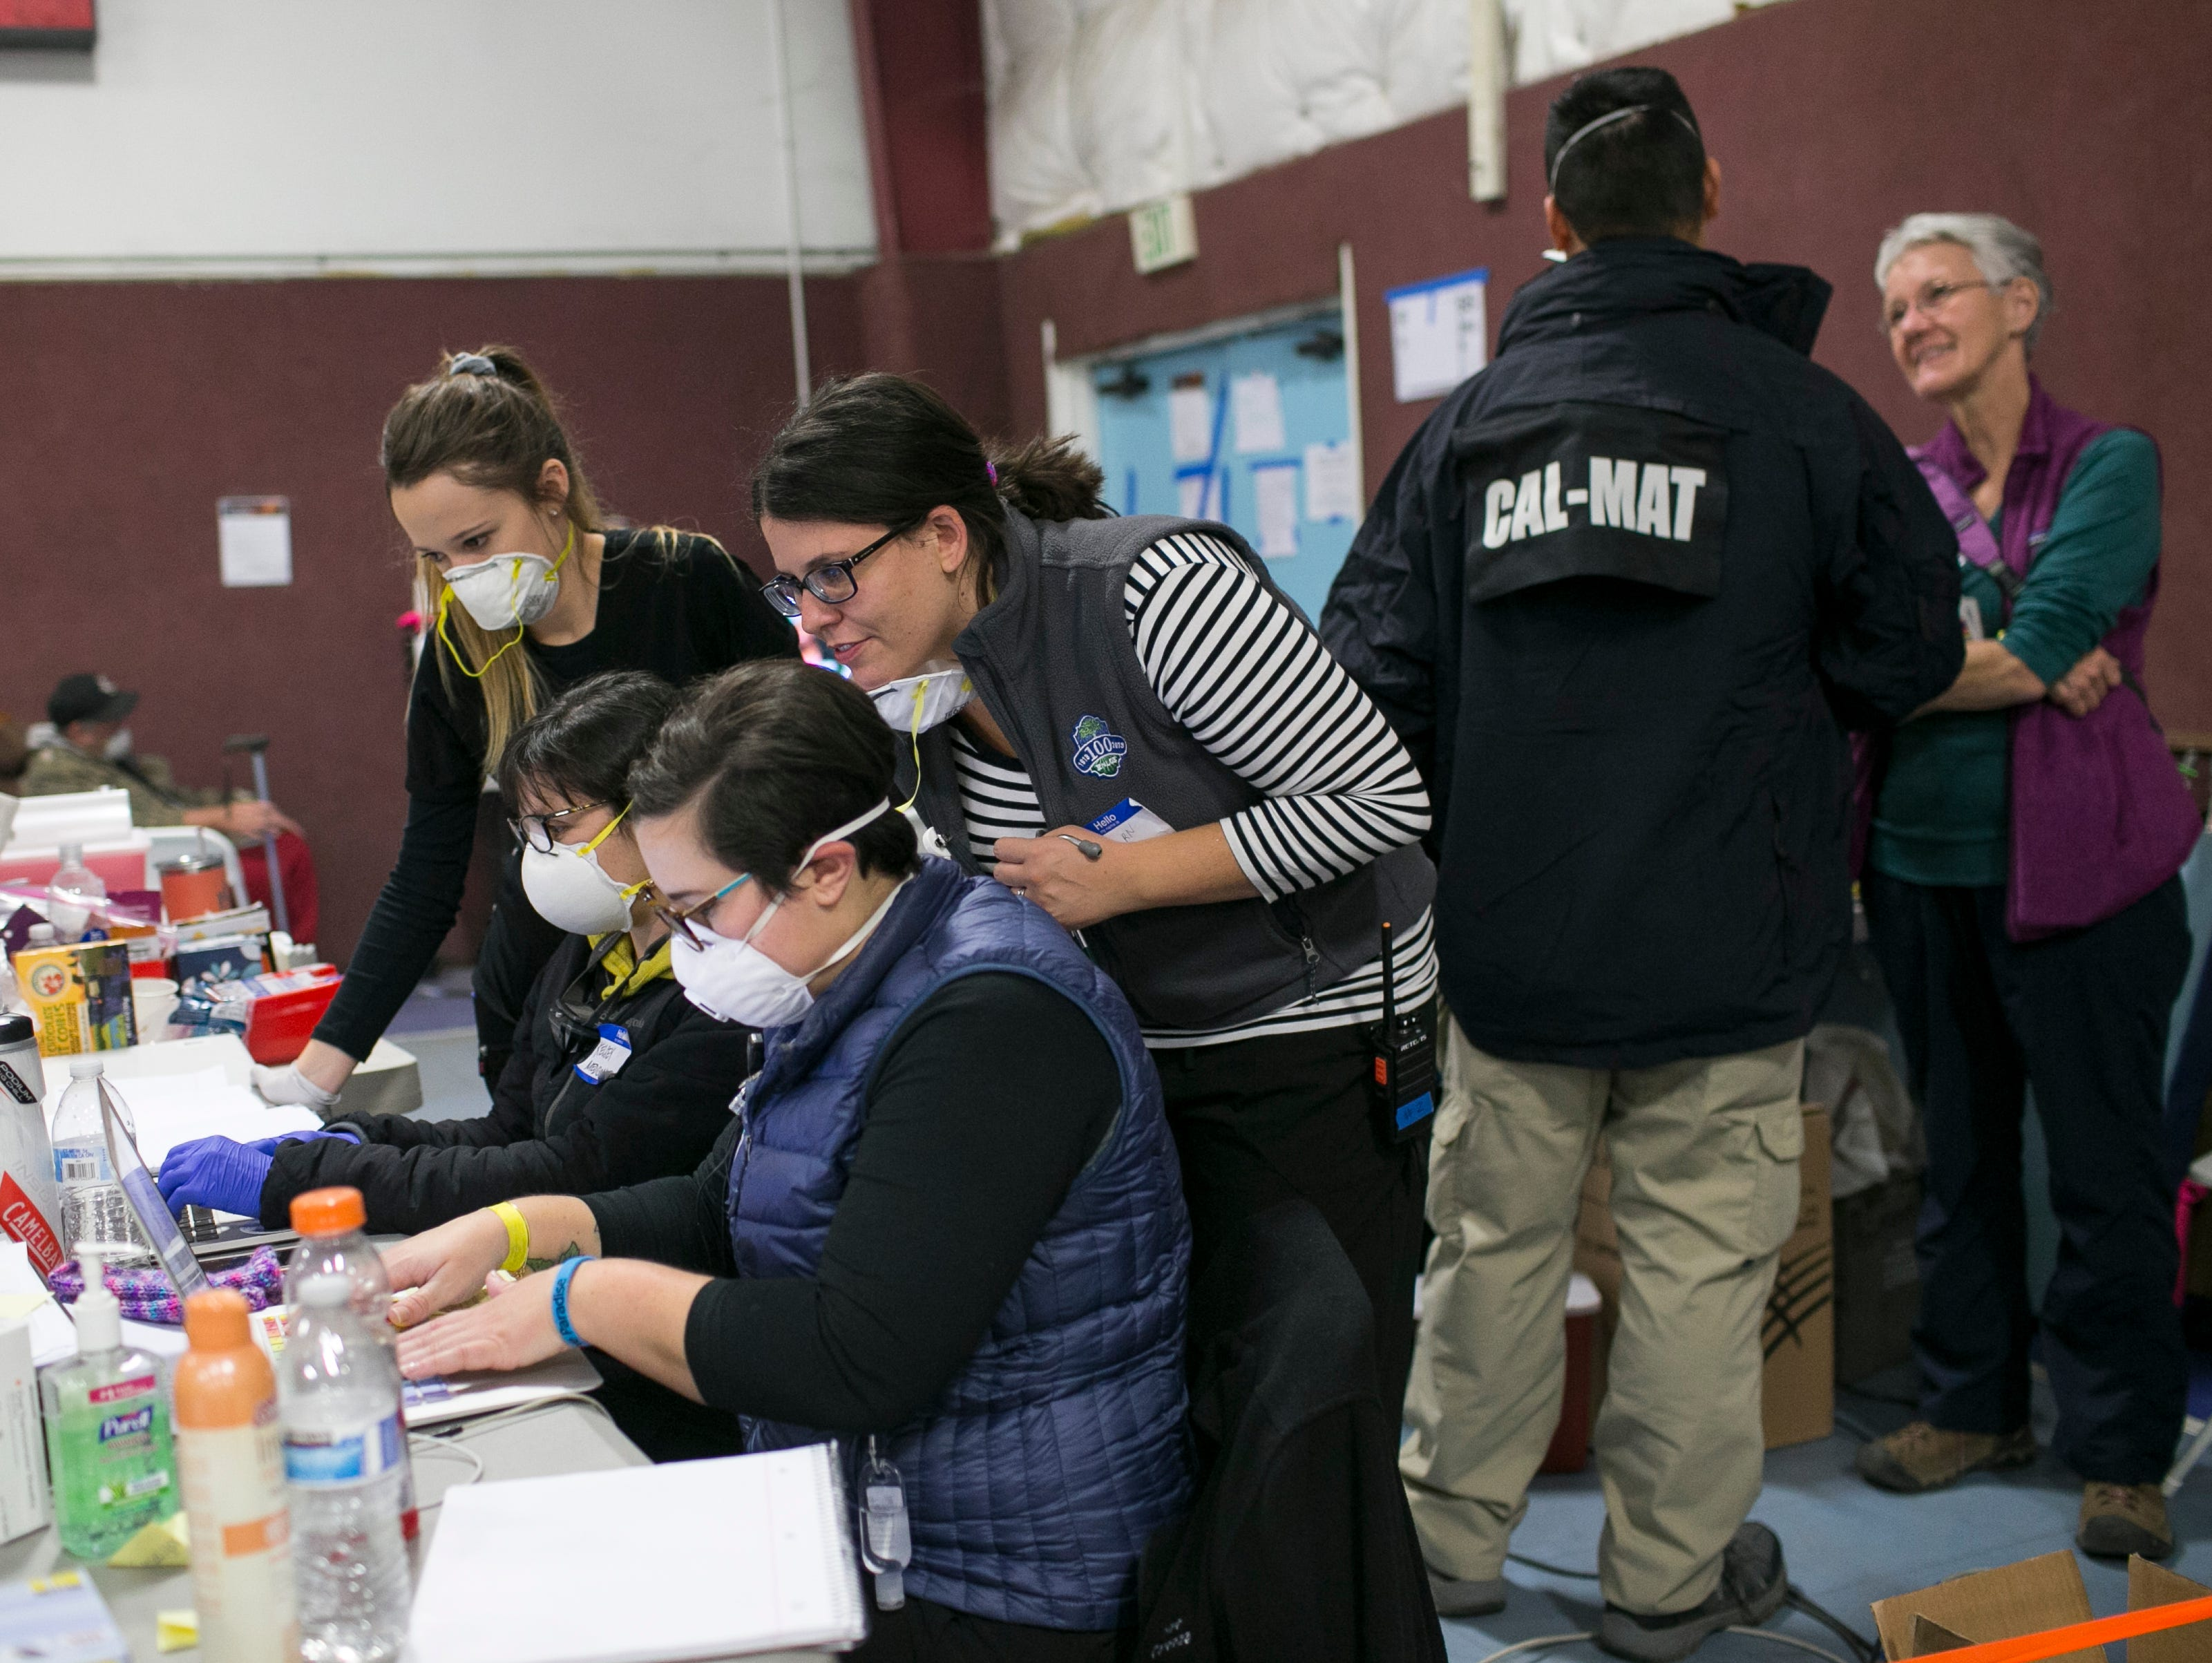 Nurses lean over the medical station inside the East Avenue Church Shelter in Chico, California on November 15, 2018. Less than a week after the Camp Fire destroyed the town of Chico, a rotational volunteer based nursing staff had joined the East Avenue Church shelter to lend a hand to the displaced evacuees seeking hosing there.